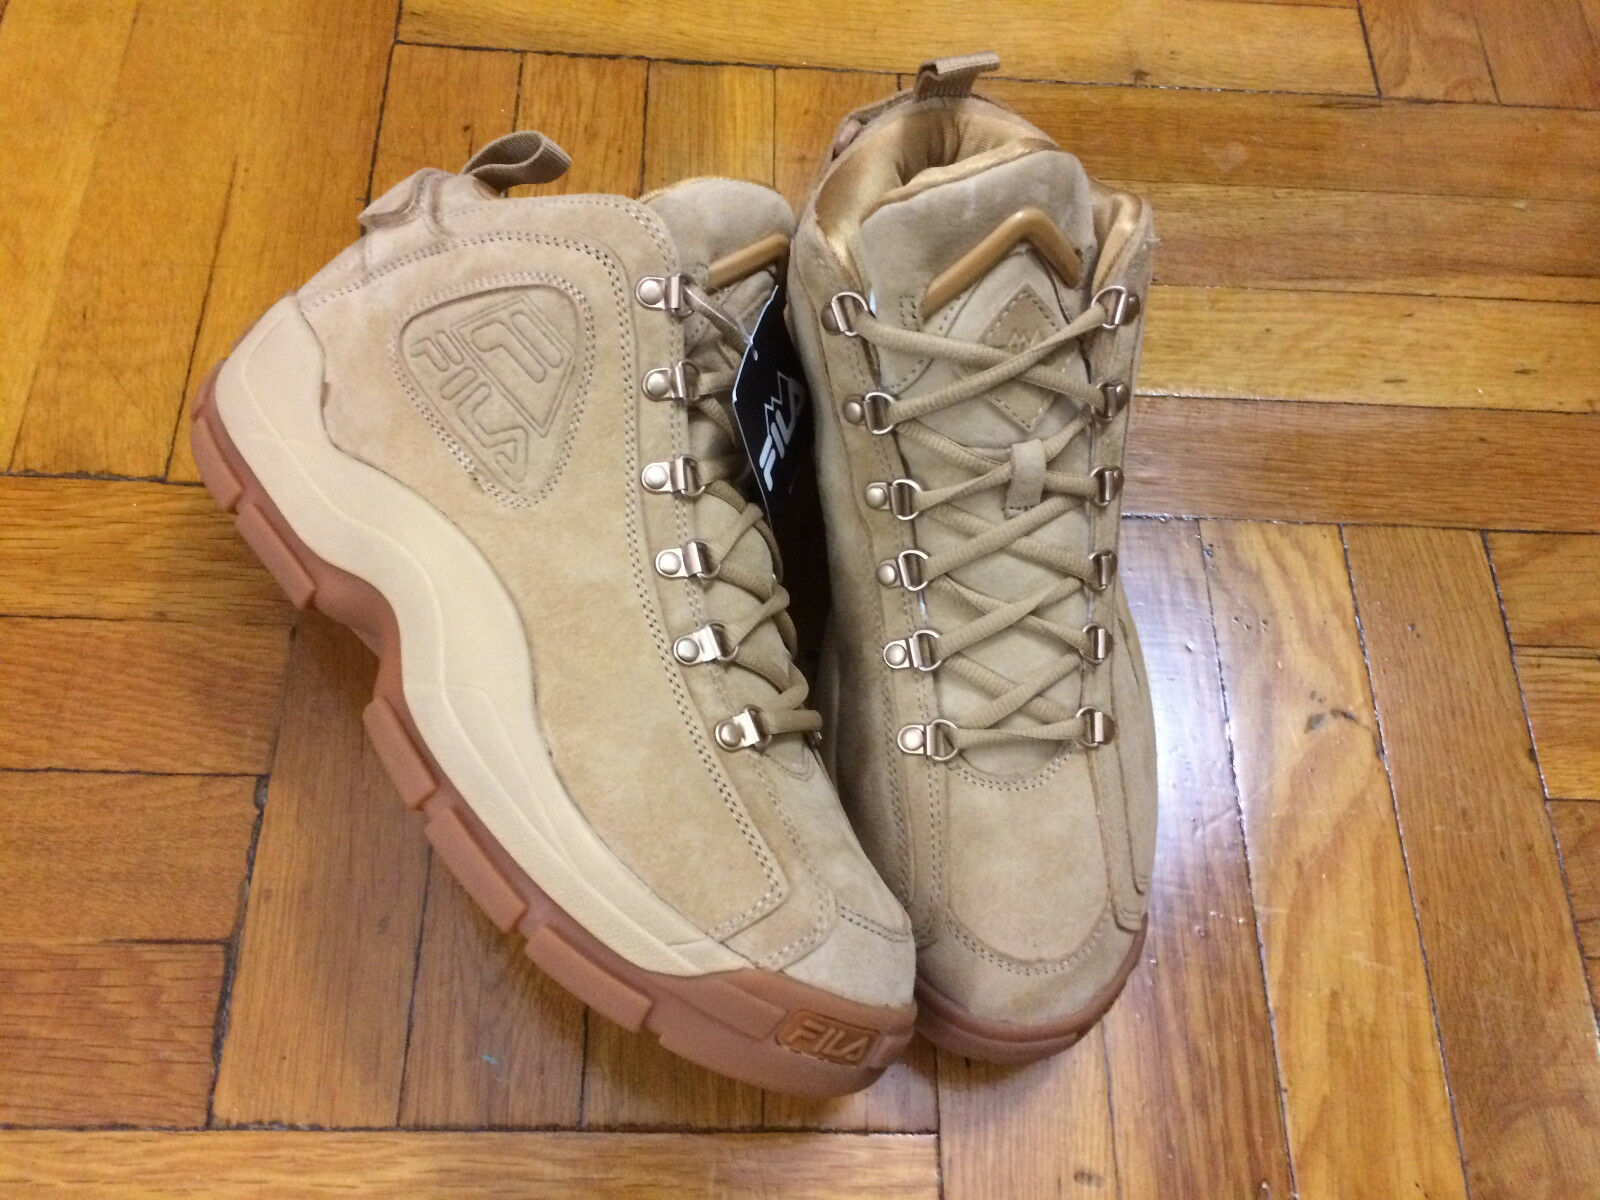 Fila Outdoor 95 96 97 Grant Hill Price reduction Special limited time